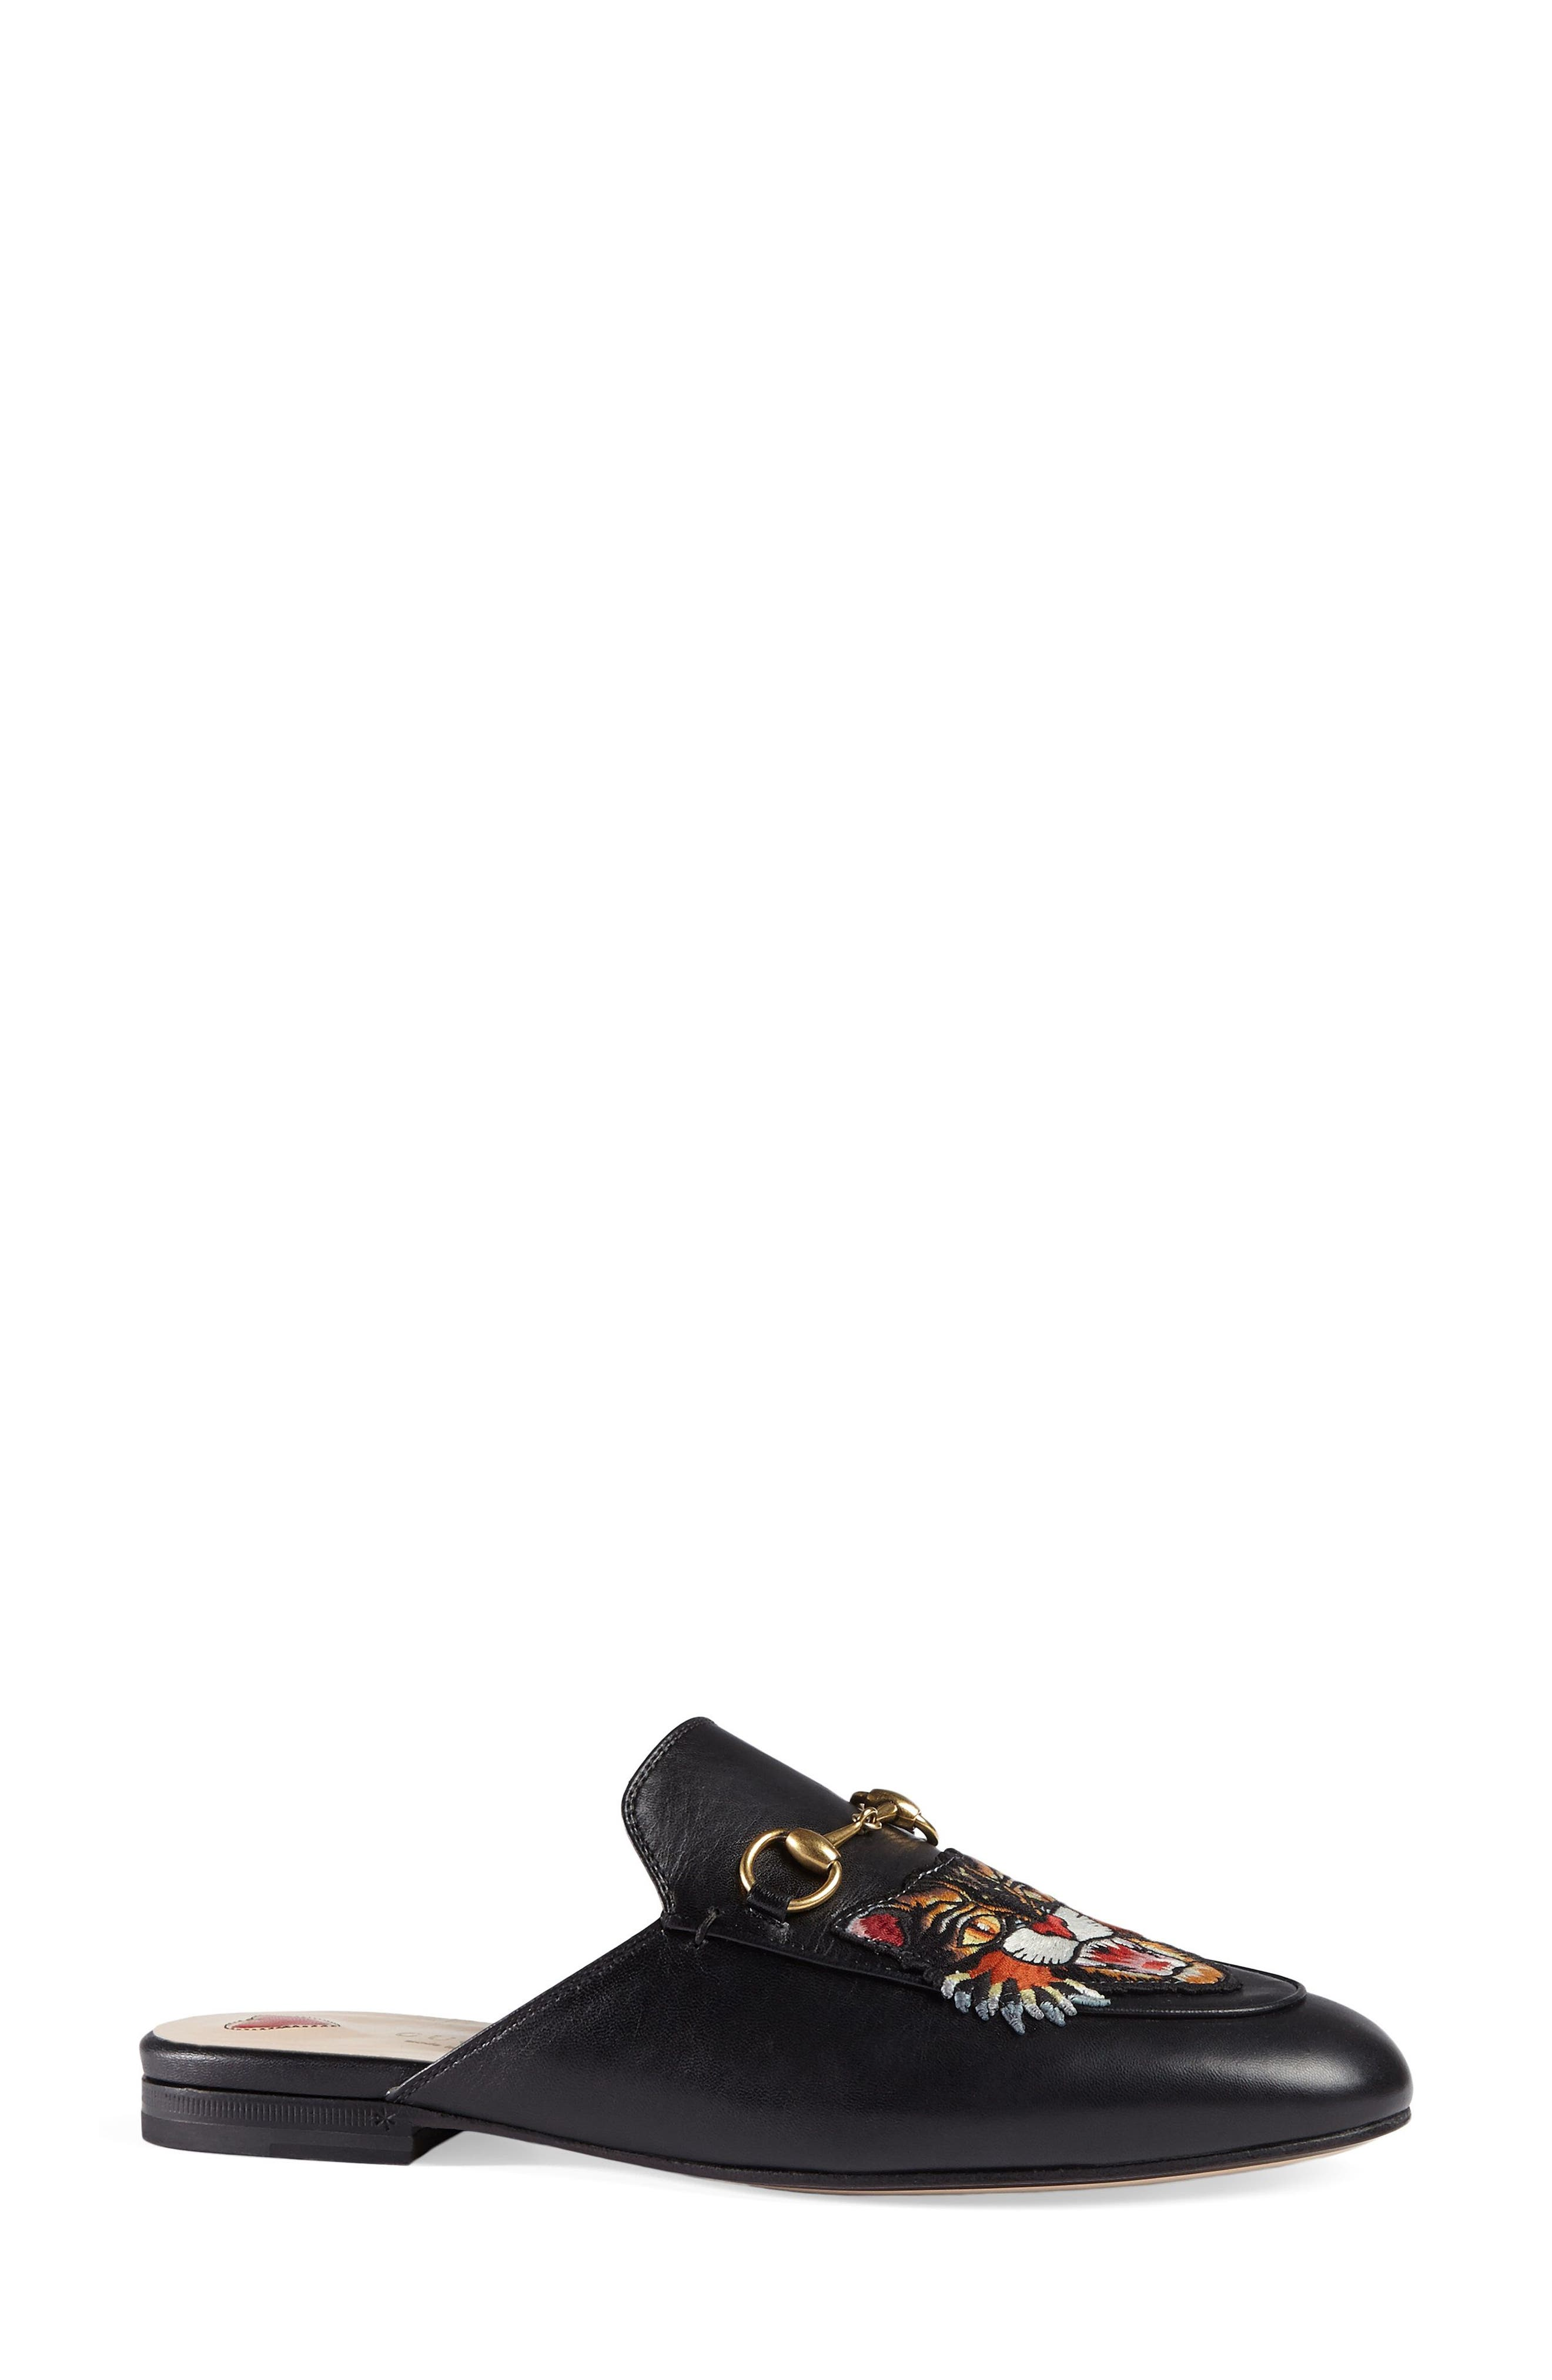 Alternate Image 3  - Gucci Princetown Angry Cat Mule Loafer (Women)